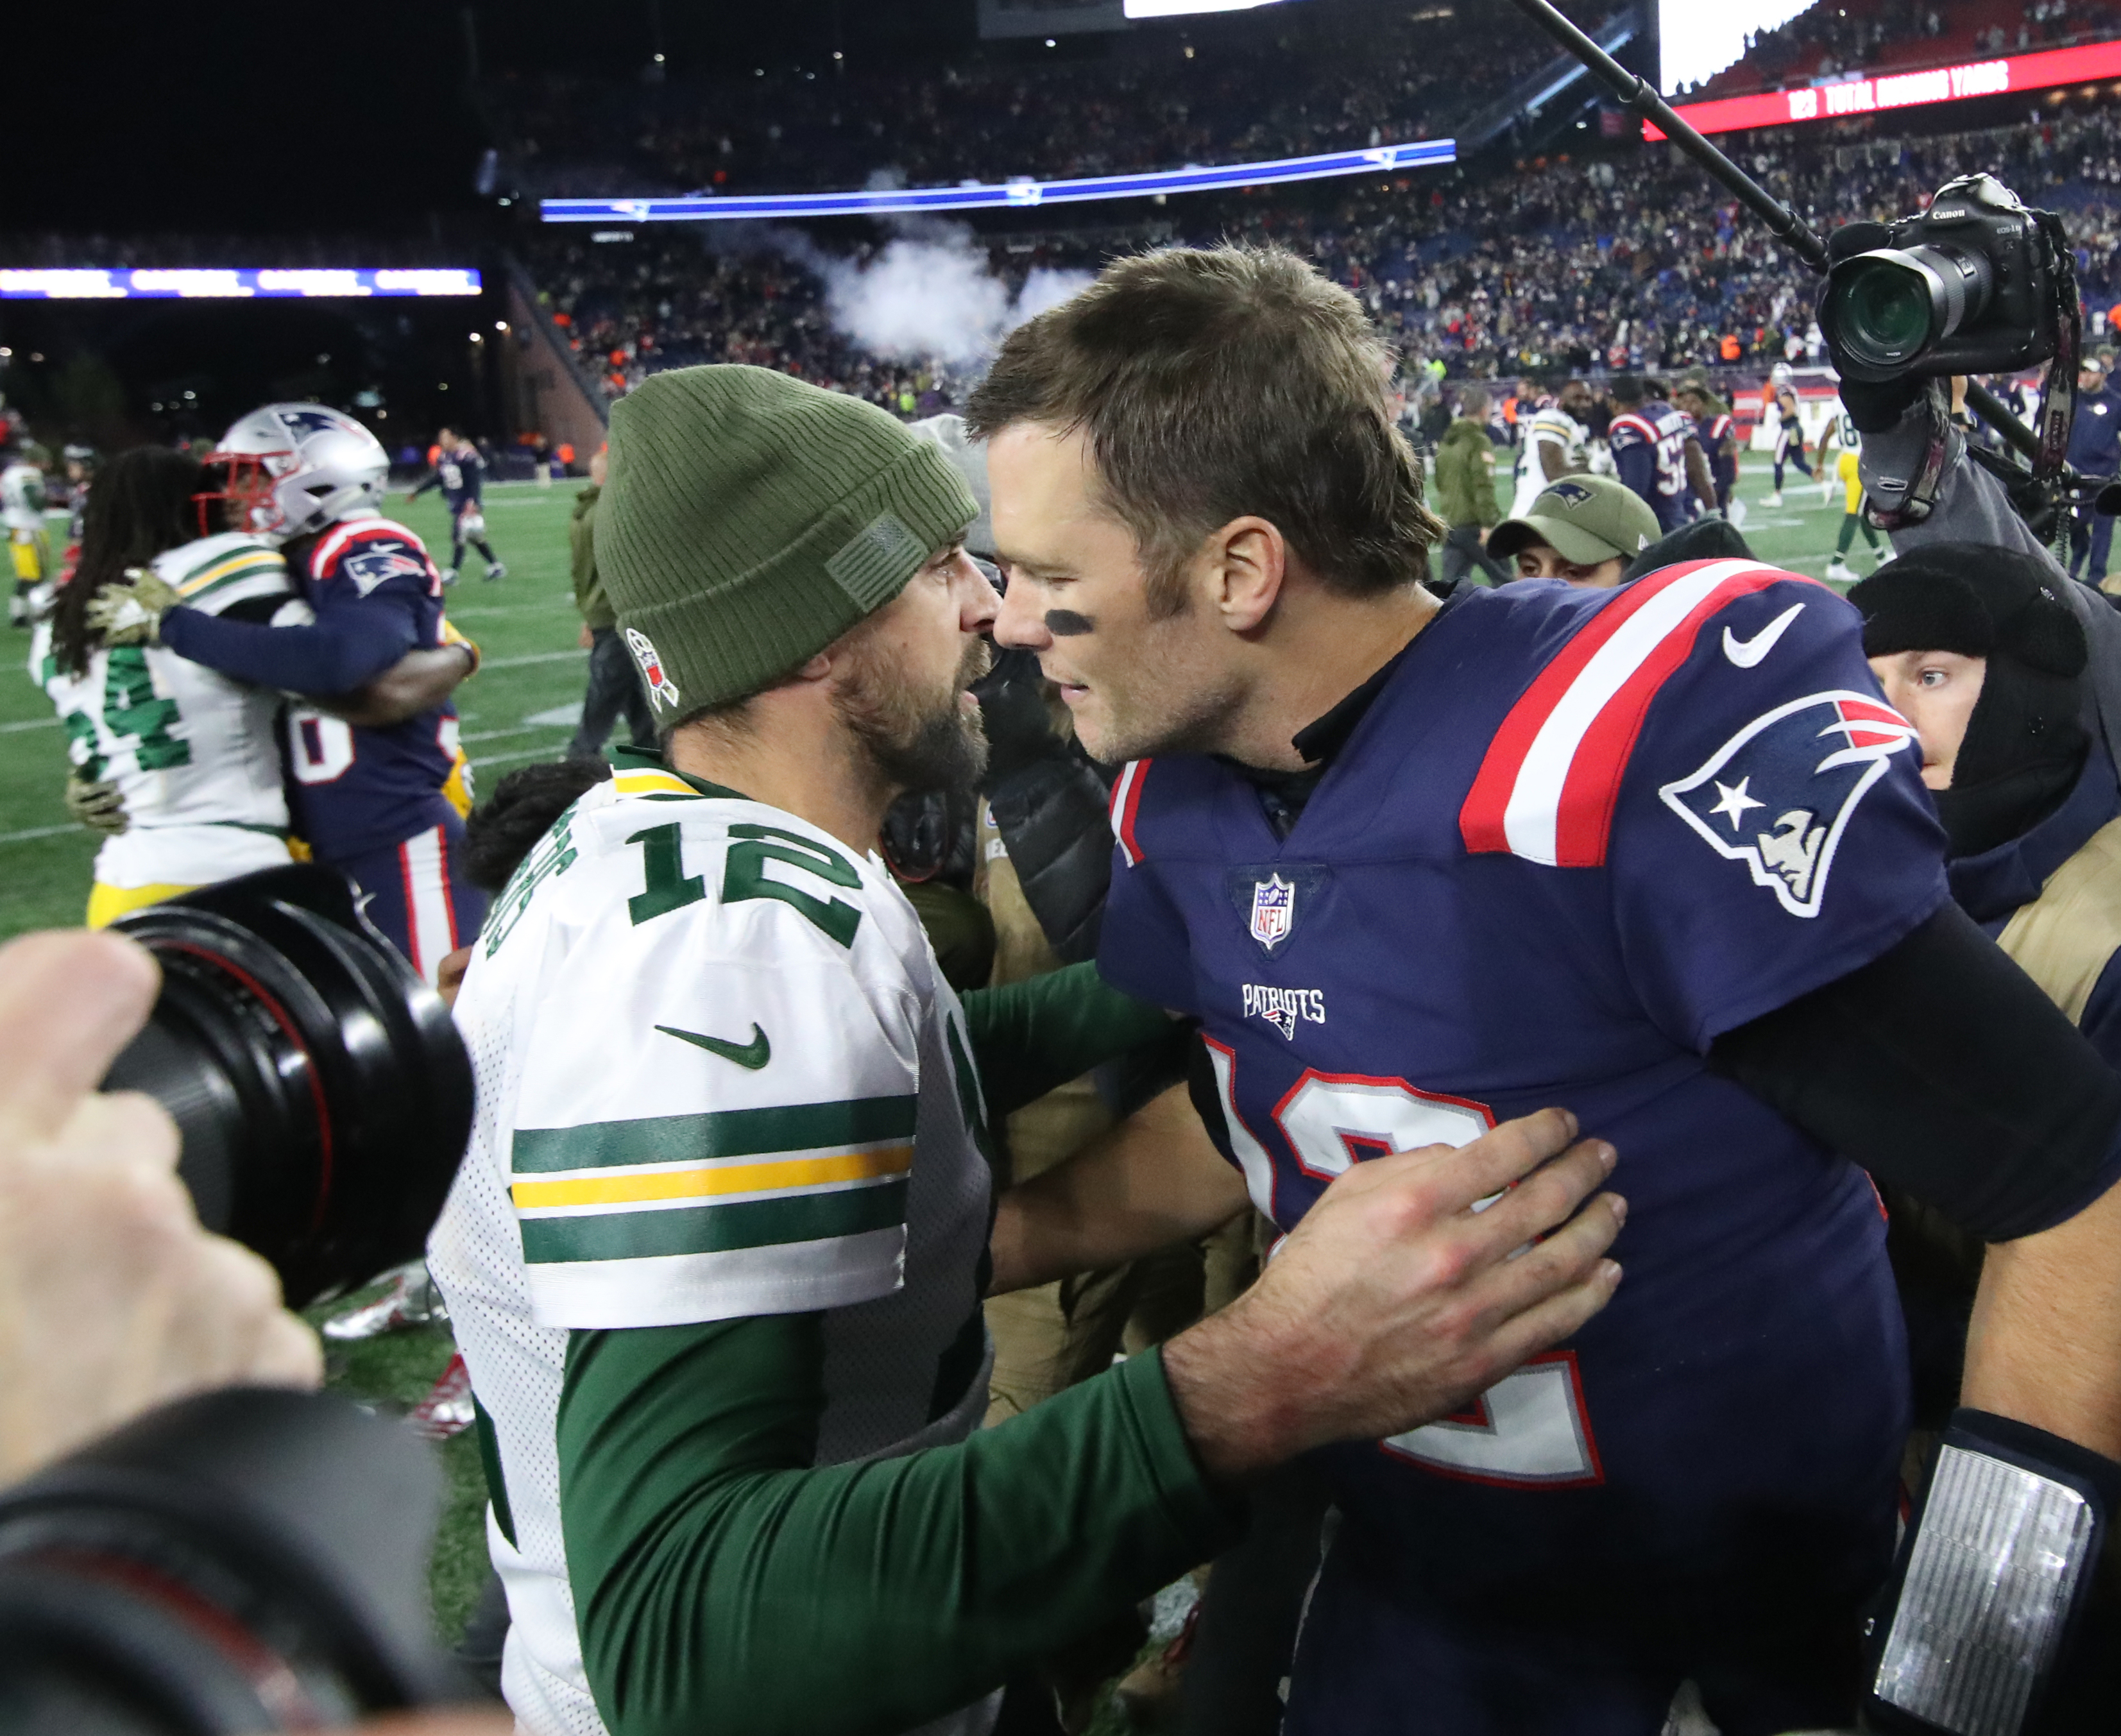 Green Bay Packers Vs. New England Patriots At Gillette Stadium